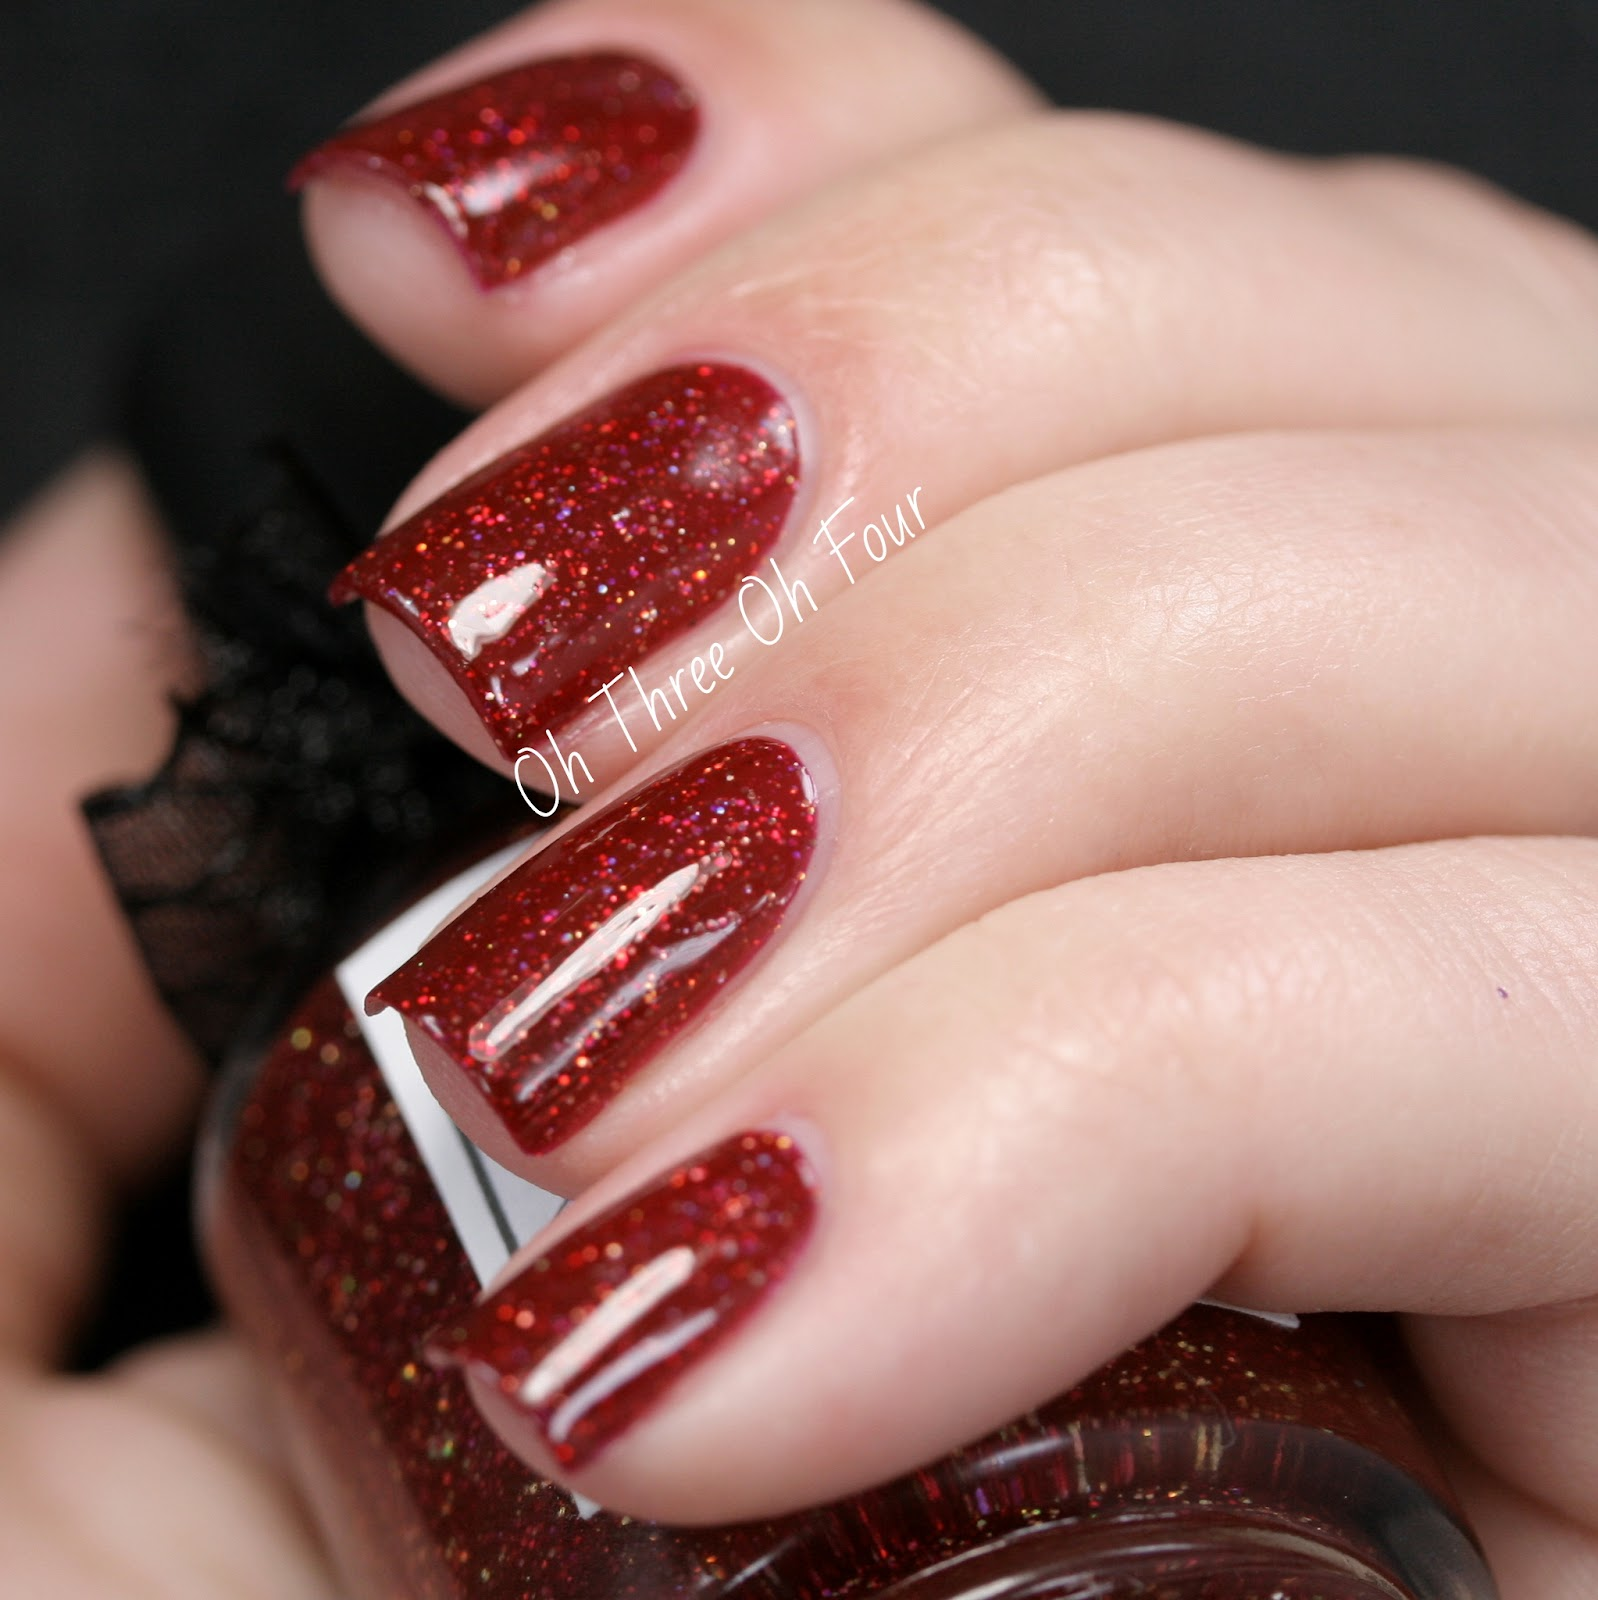 Deep Wine Nail Polish: Oh Three Oh Four: Lacquerhead Polish Behind Blue Eyes